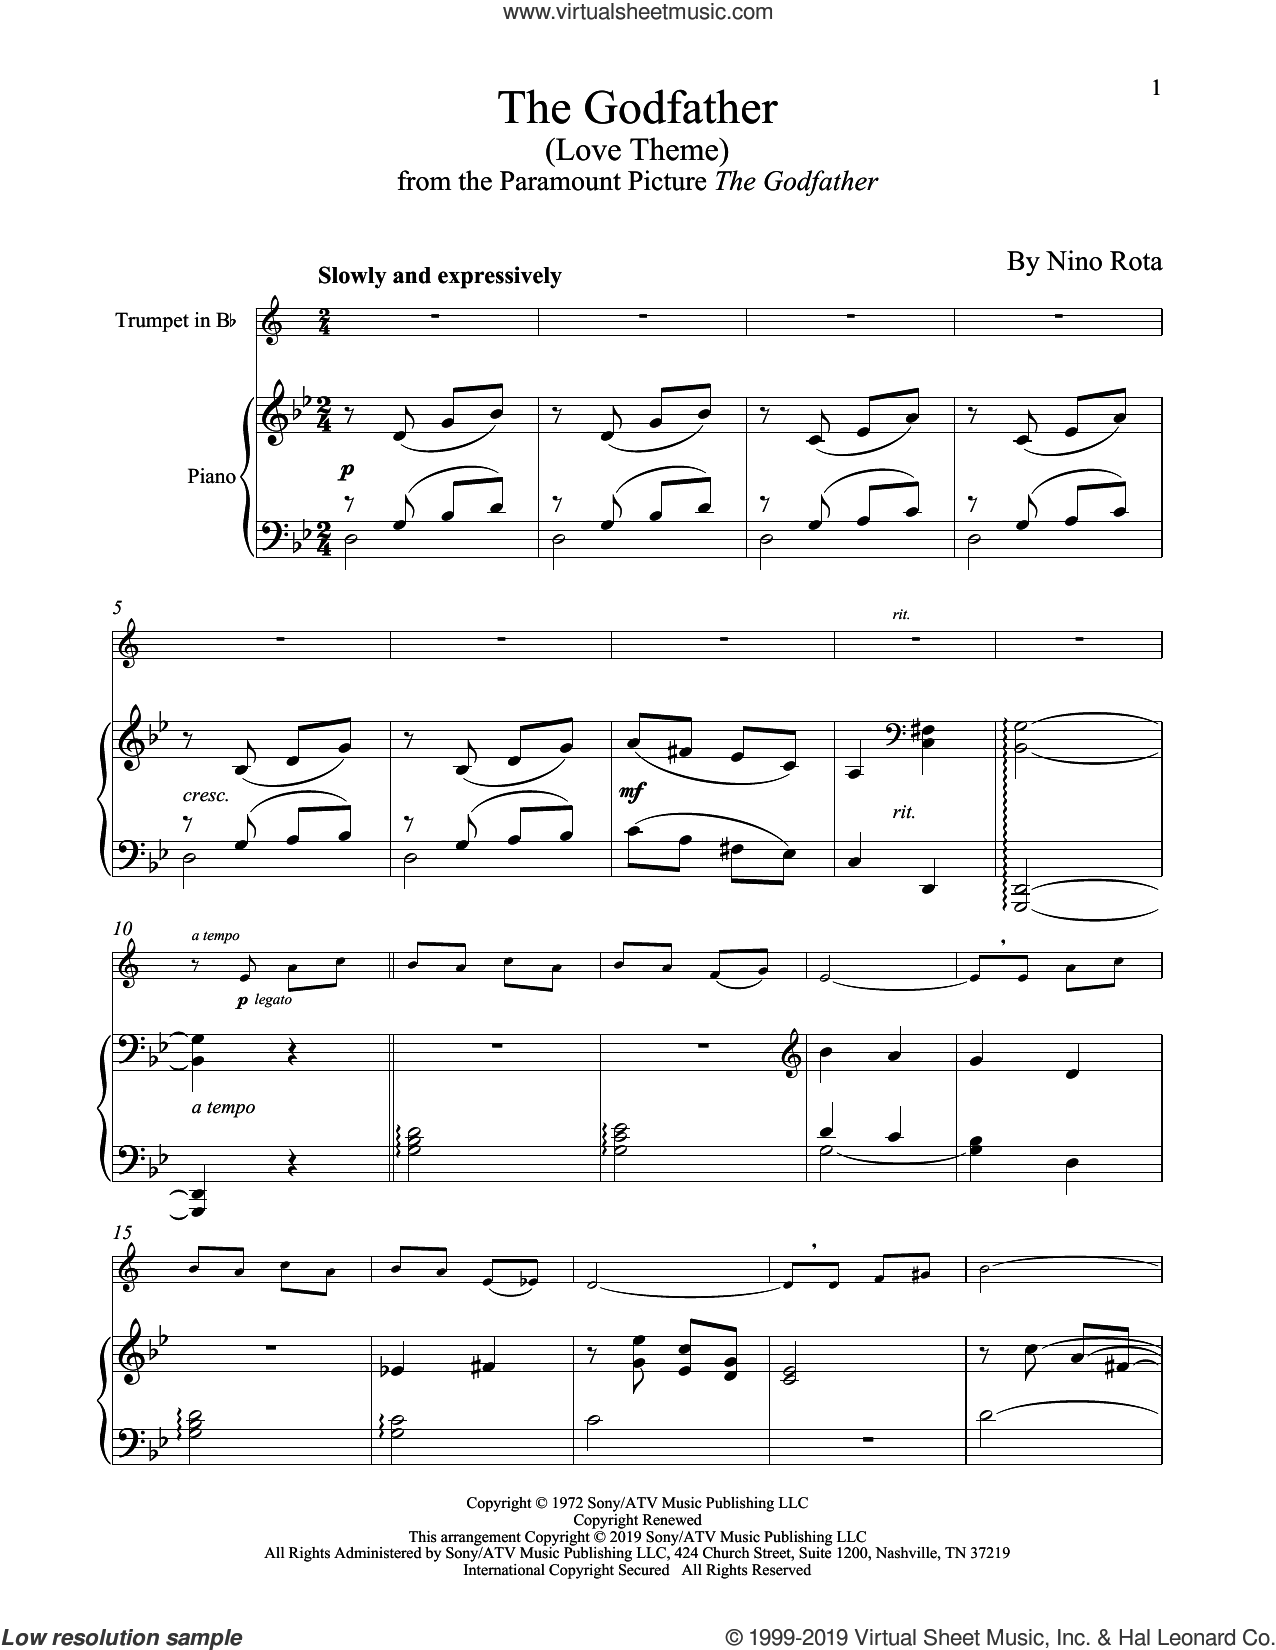 The Godfather (Love Theme) sheet music for trumpet and piano by Nino Rota, intermediate skill level